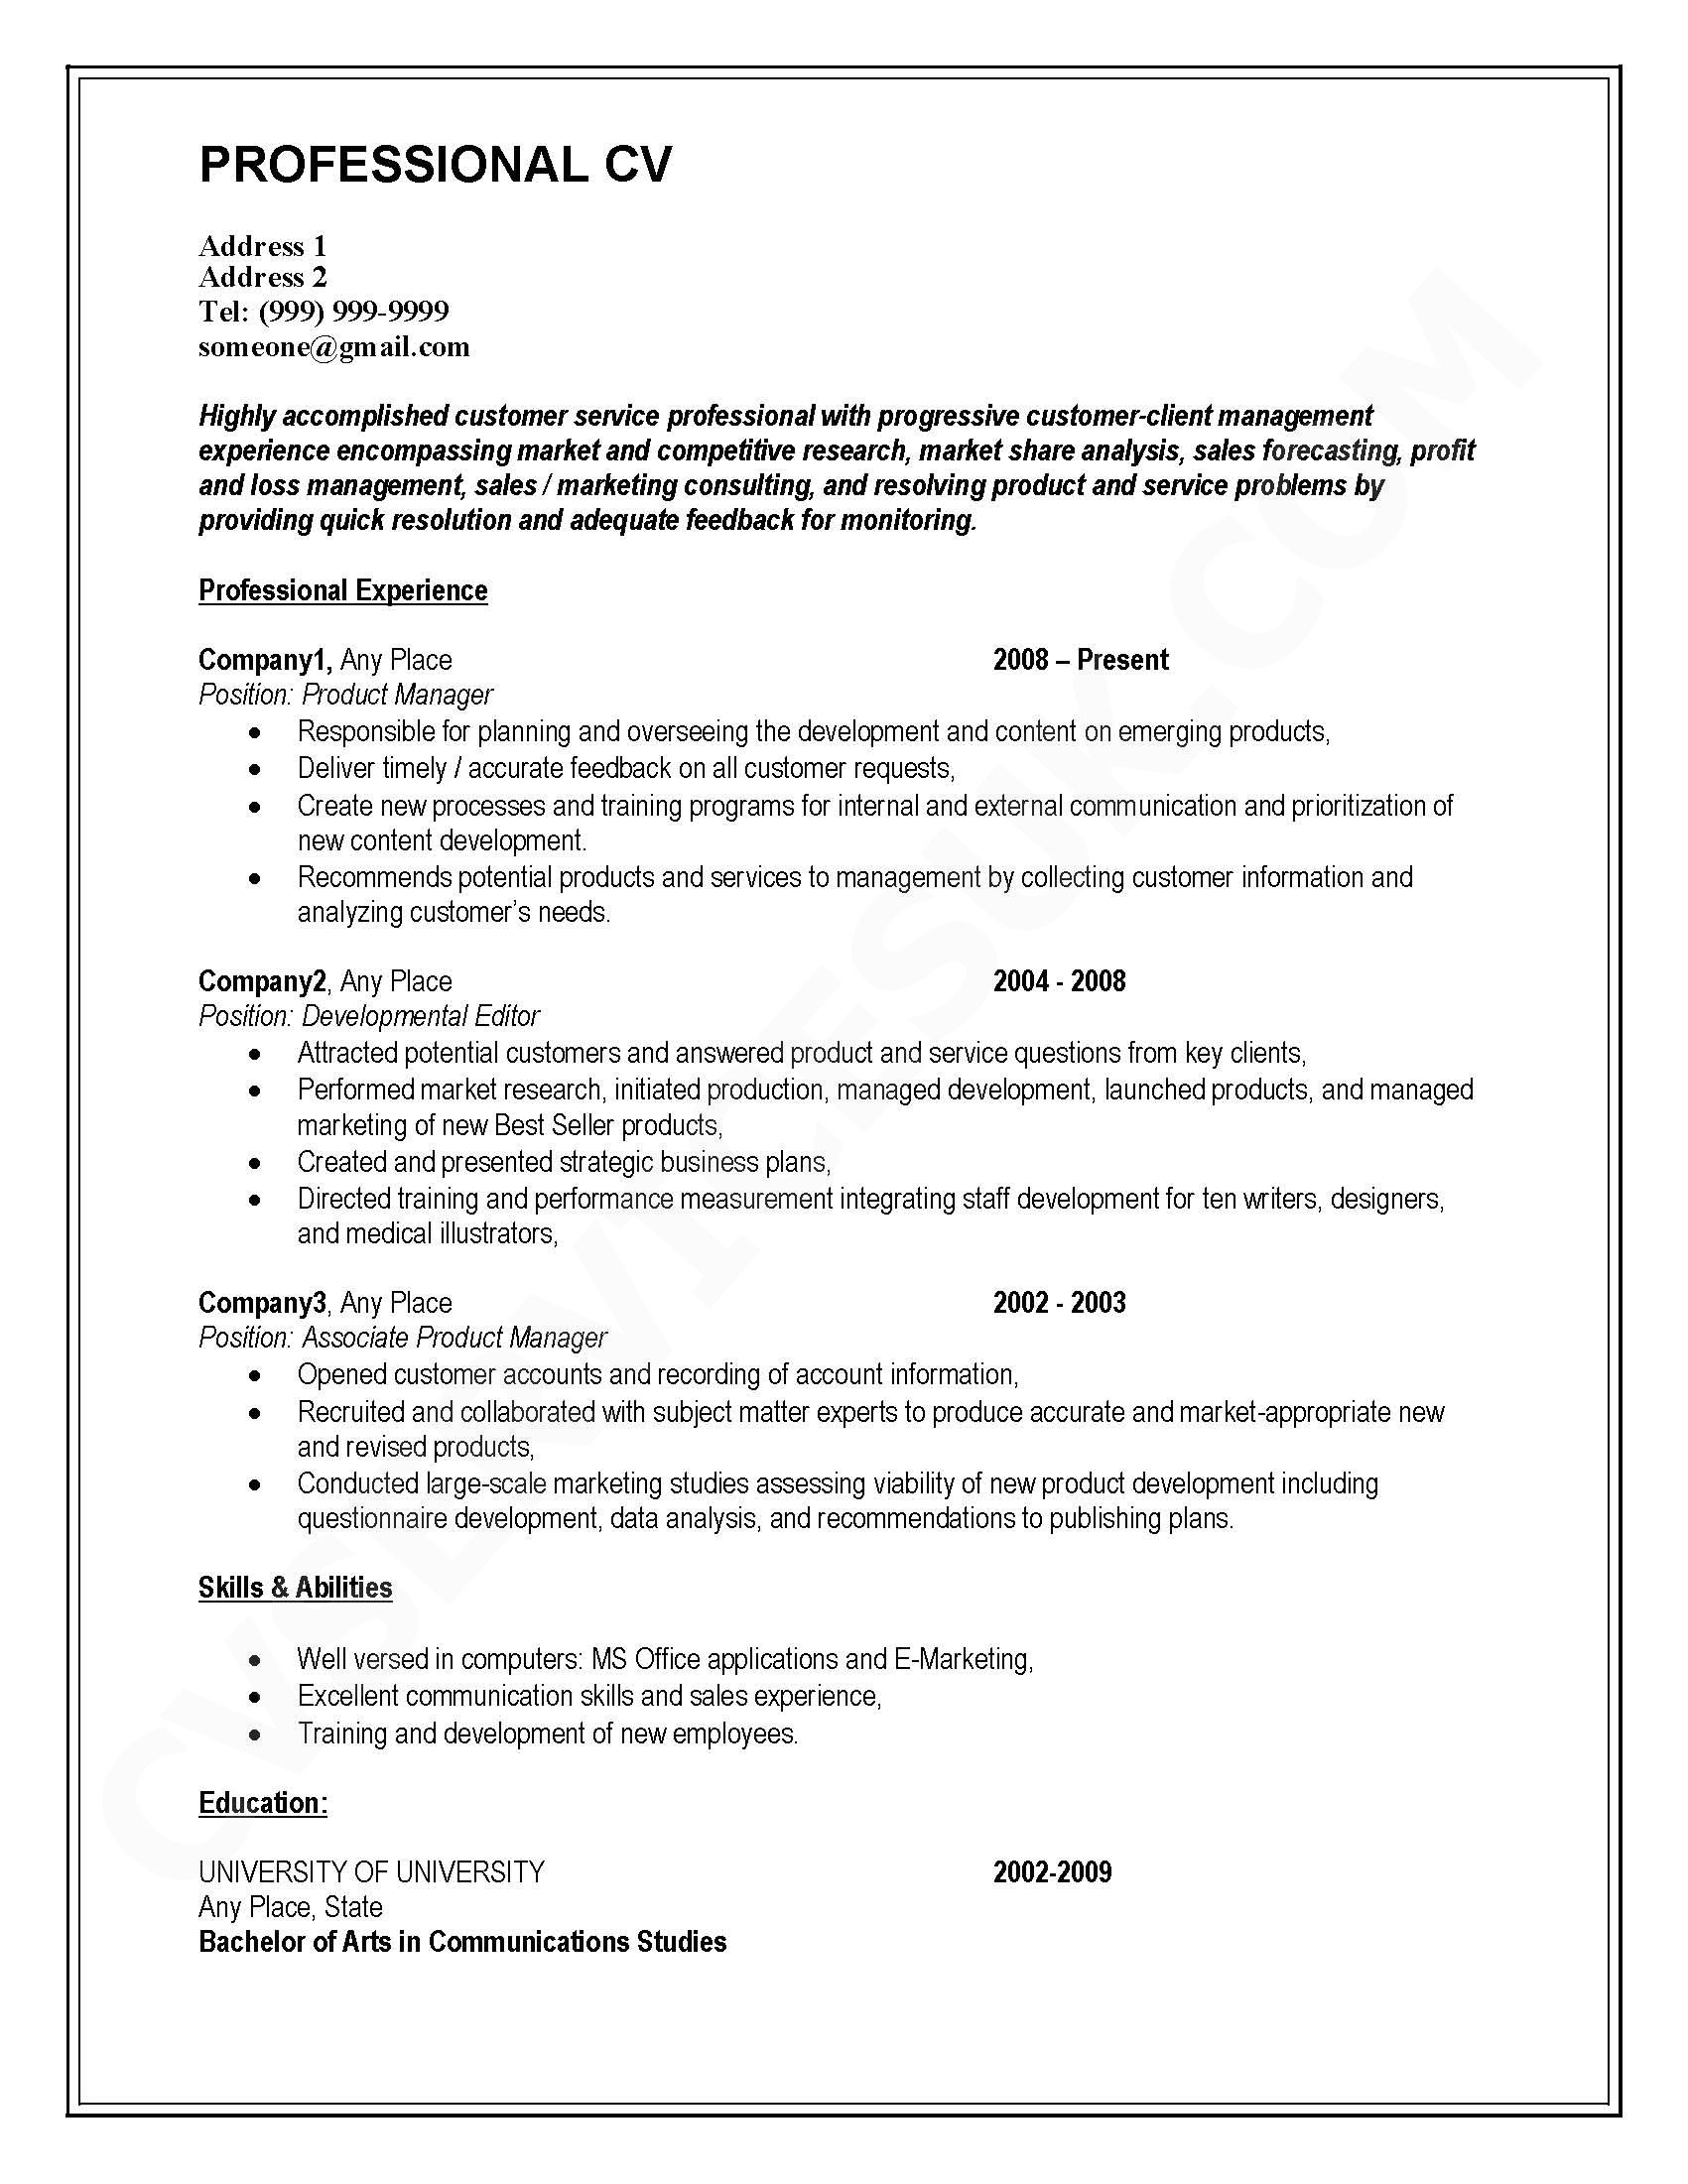 professional resume writing service chicago government resume writing service reviews government resume imagerackus remarkable examples of - Professional Resume Writing Companies